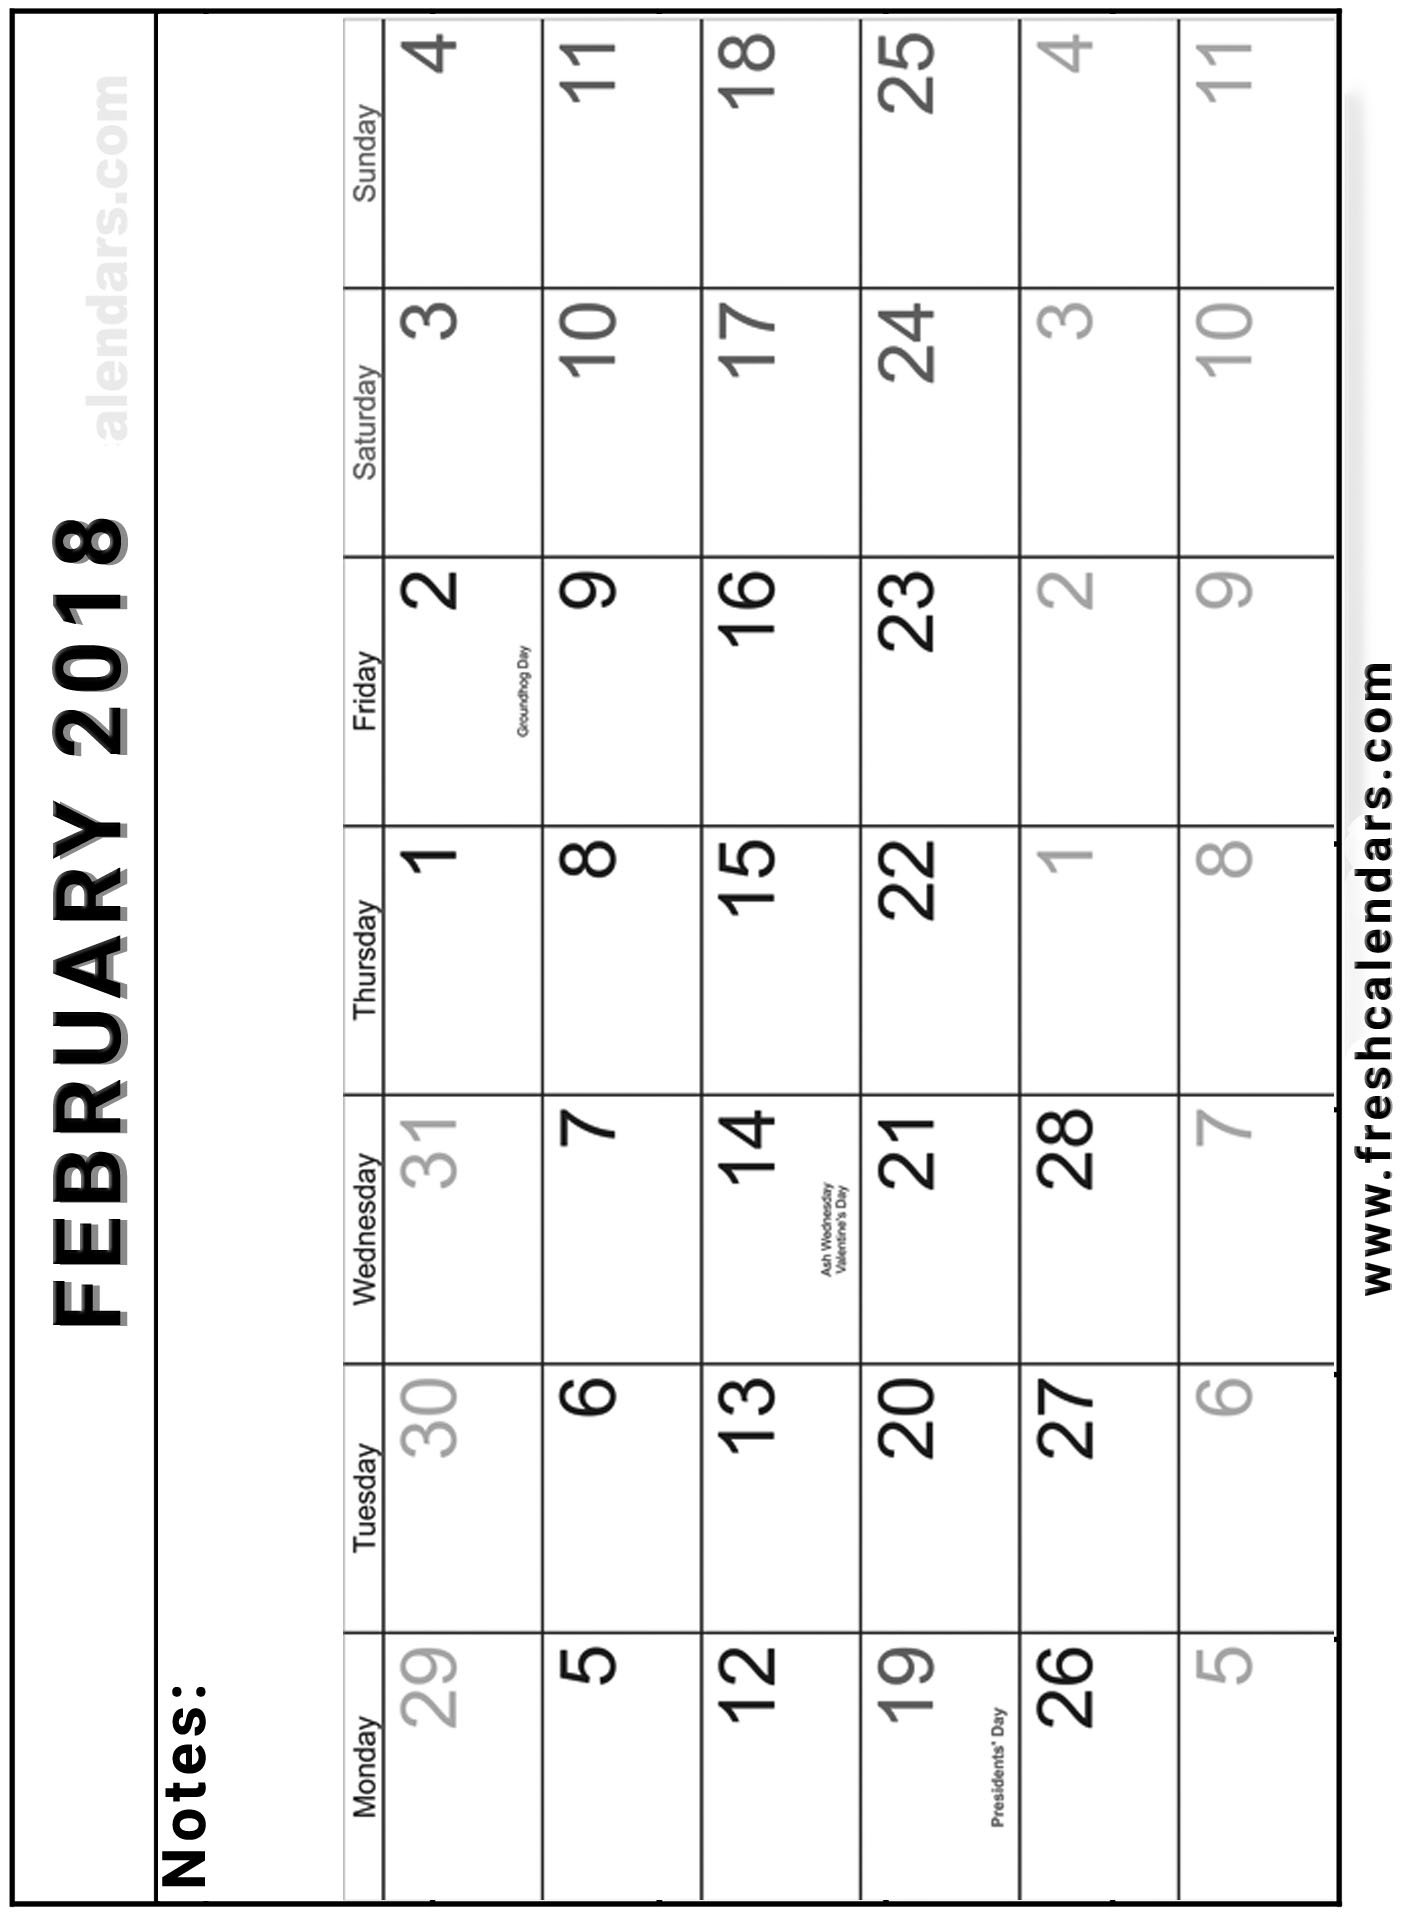 vertical february 2018 calendar with holidays and notes space